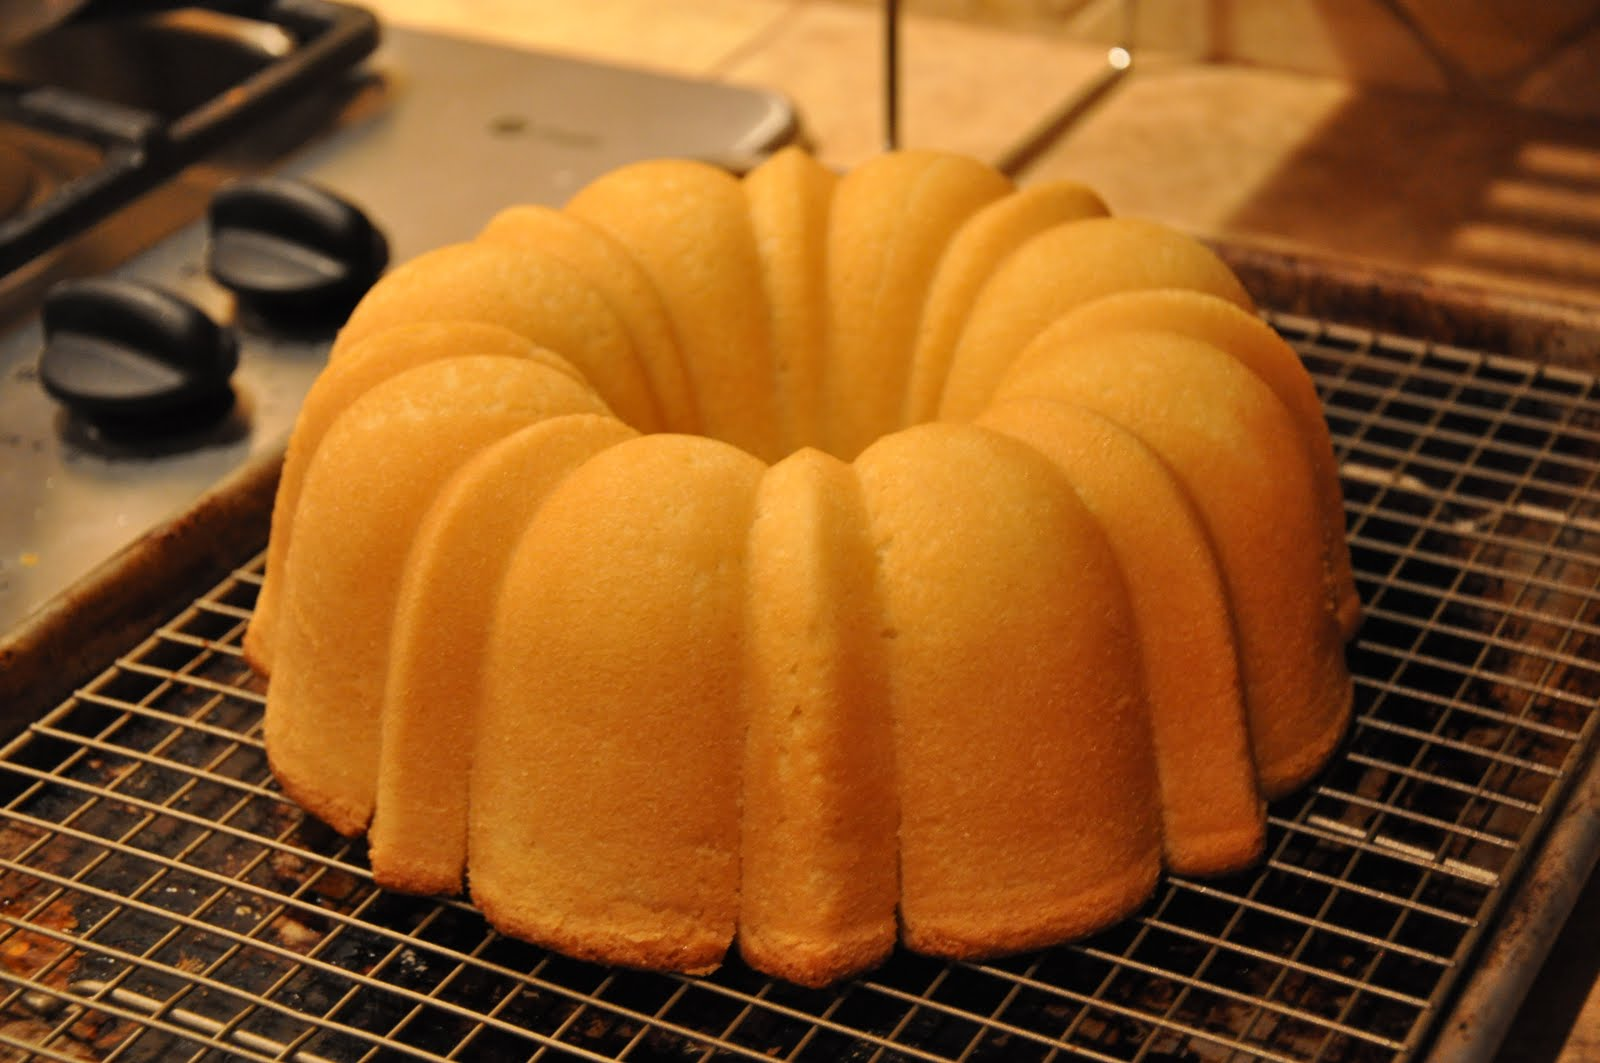 10 Inch Tube Pan Pound Cake Cake Serving Sizes Guide For